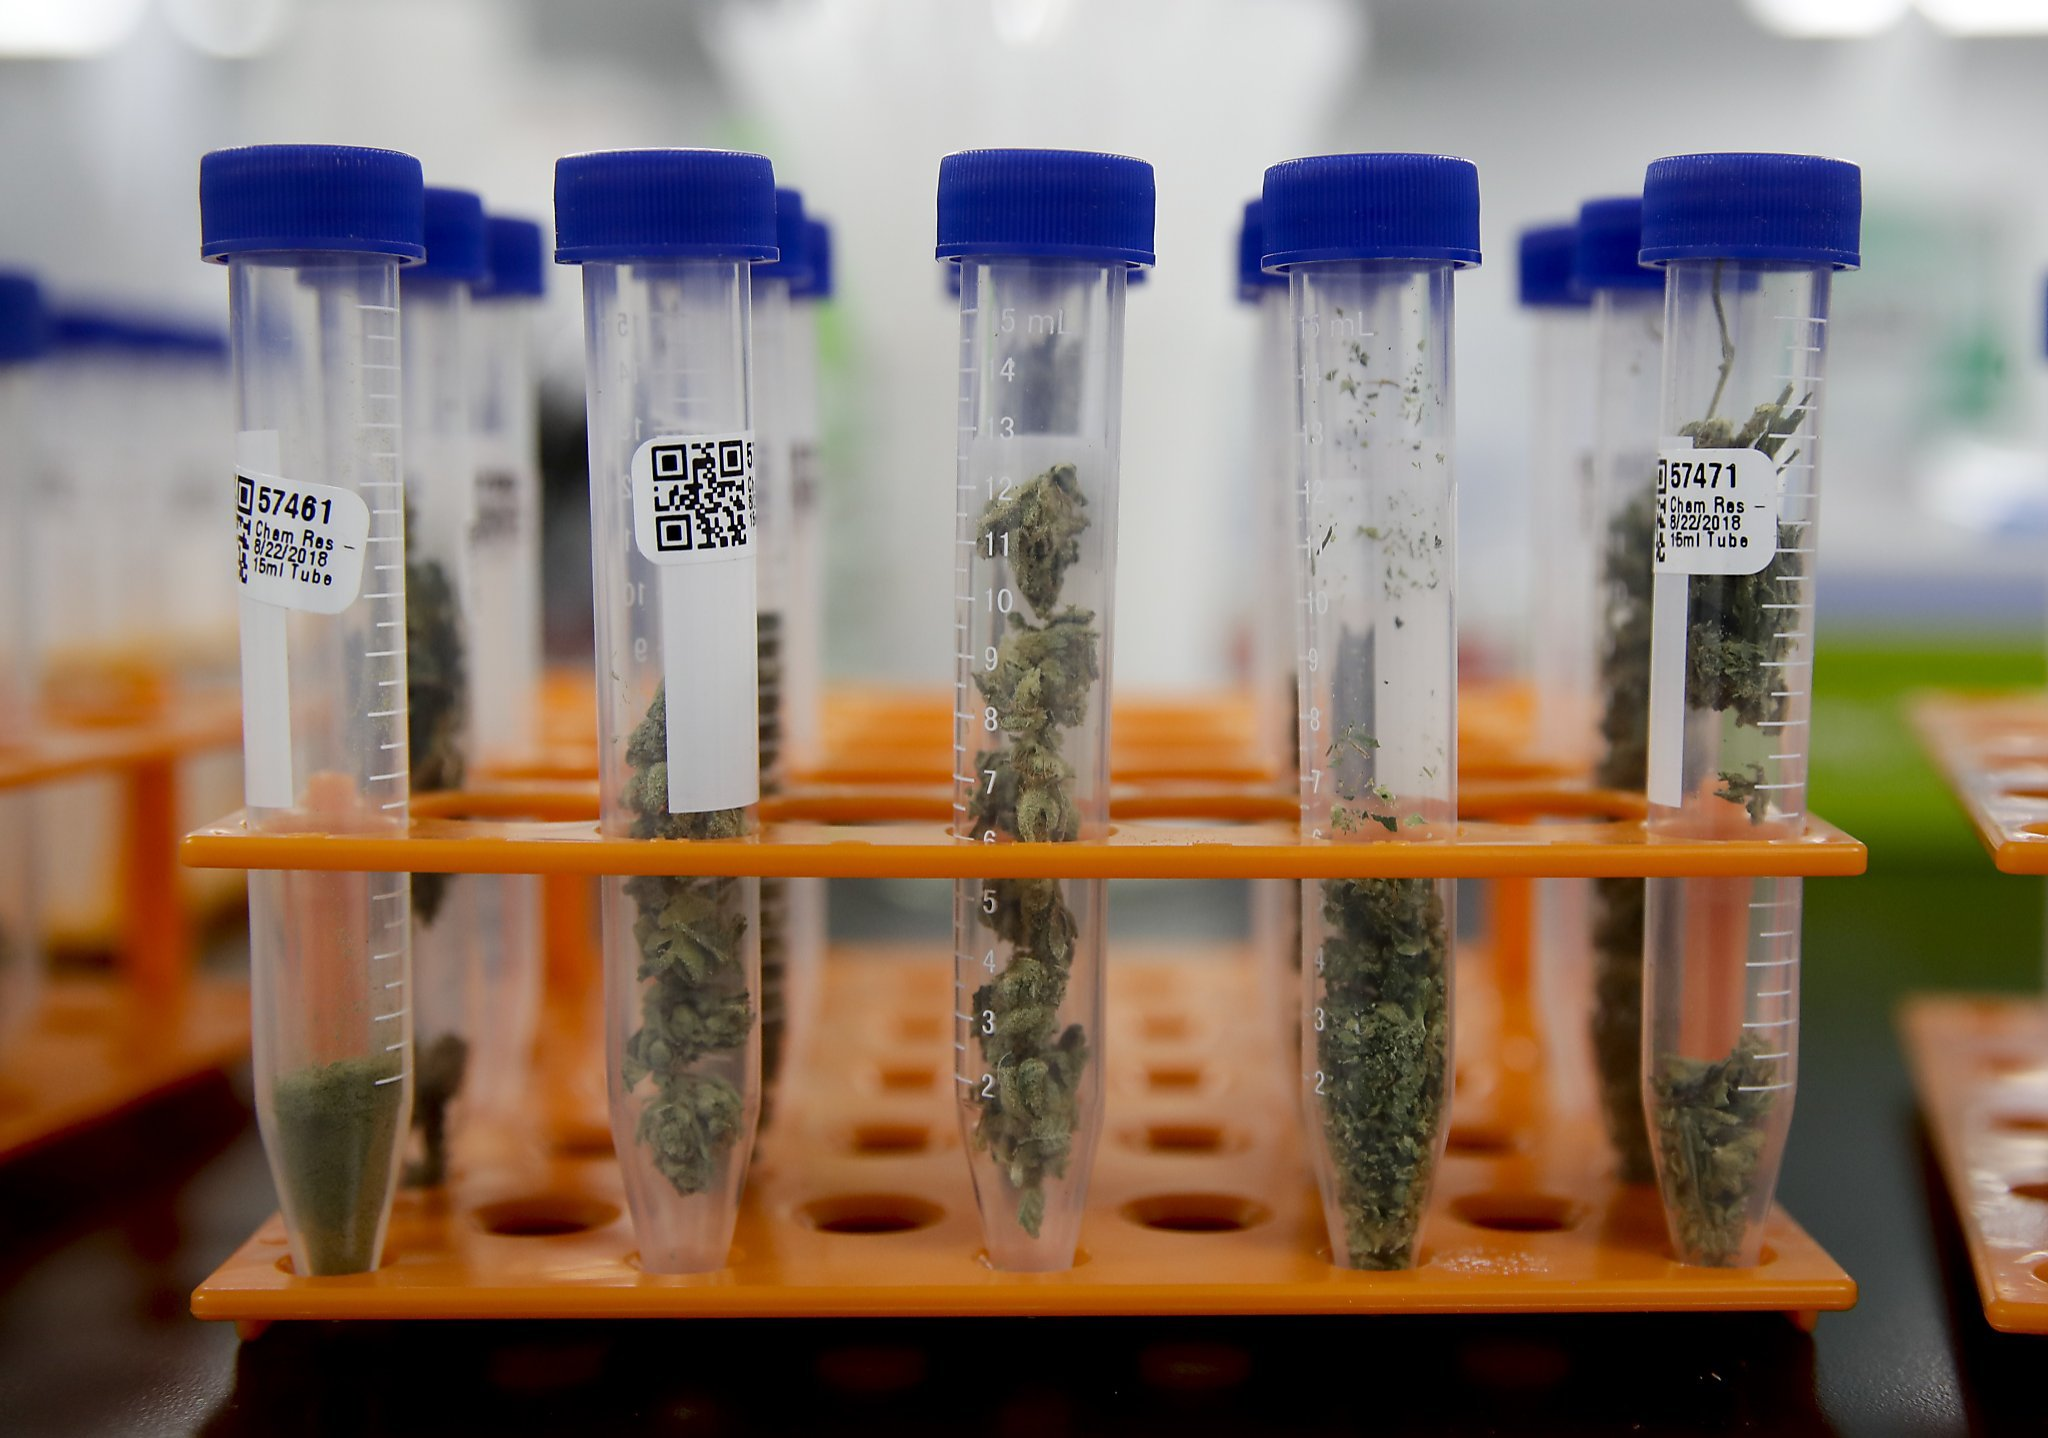 The recall of tens of thousands of pounds of marijuana and other products after a Sacramento laboratory was caught faking pesticide test results has jolted a cannabis industry that has struggled for legitimacy in its first year facing a full-slate of state regulations.